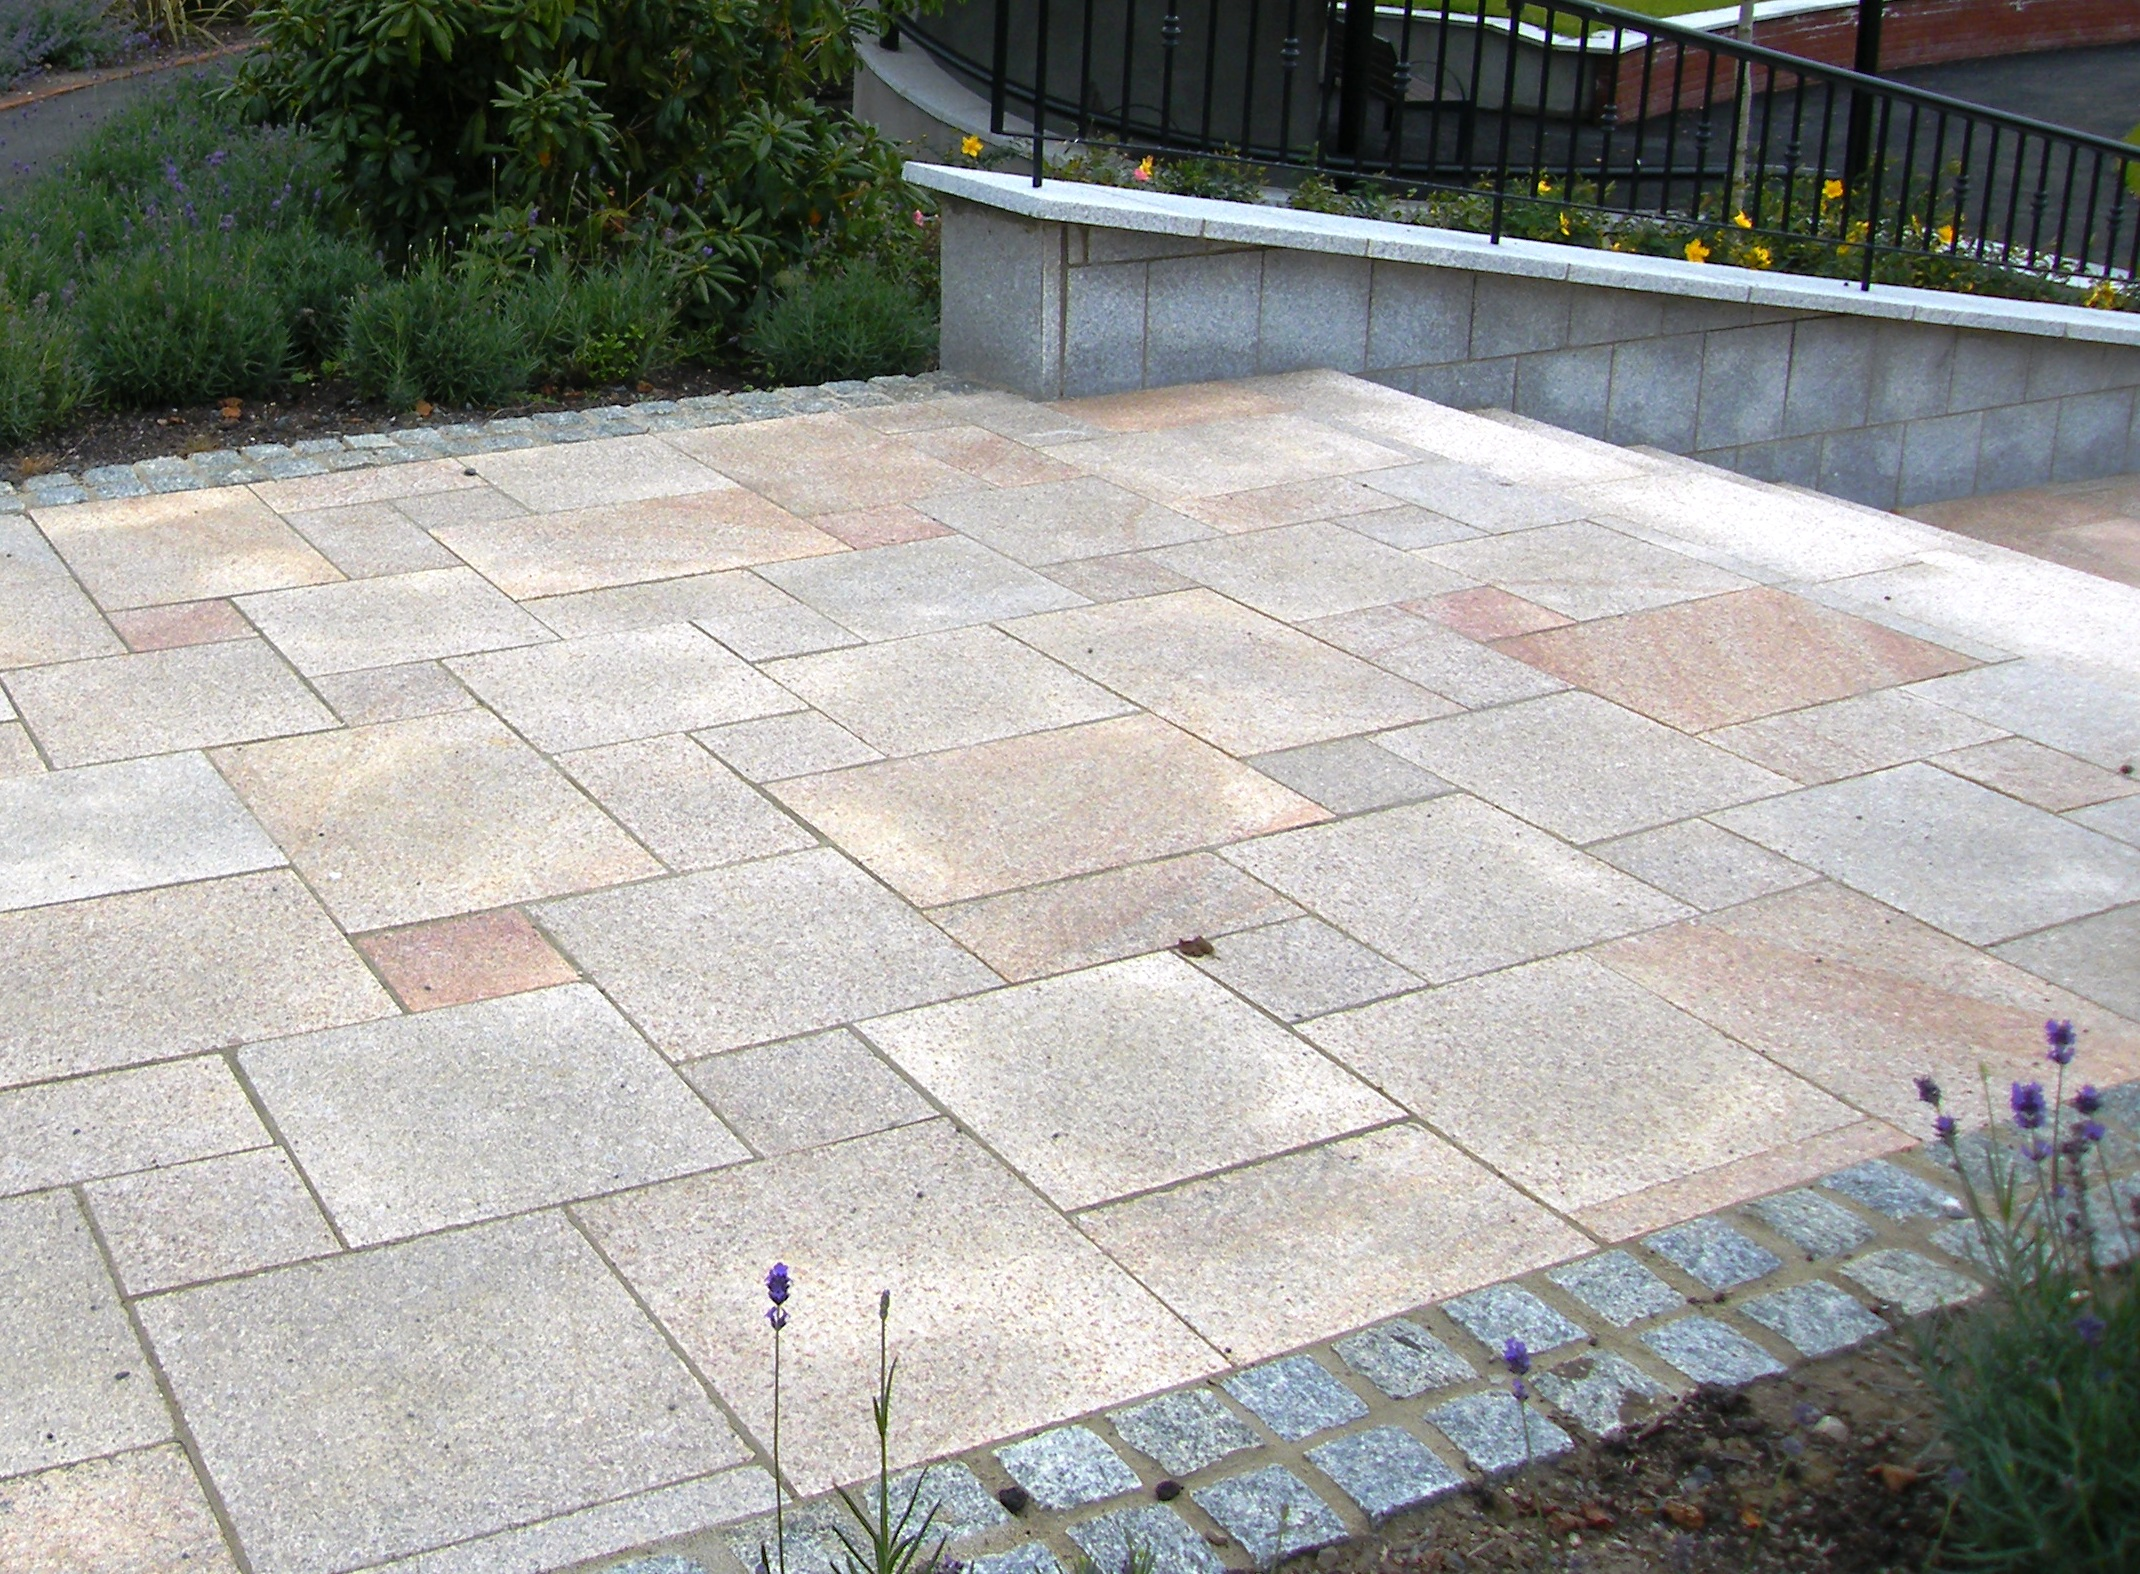 What sizes of paving slab to use in your garden design for Paved garden designs ideas